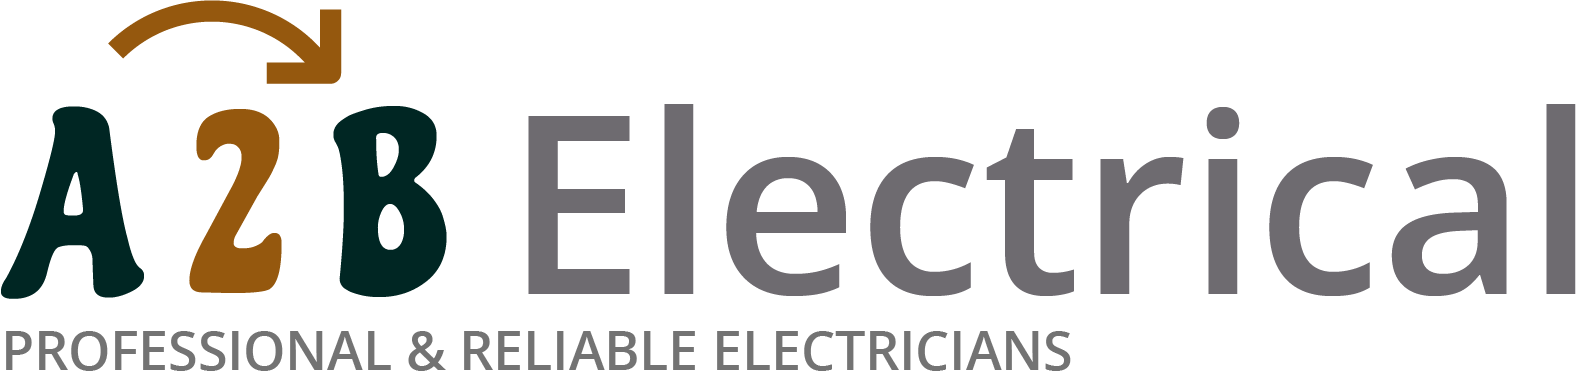 If you have electrical wiring problems in Maida Vale, we can provide an electrician to have a look for you.